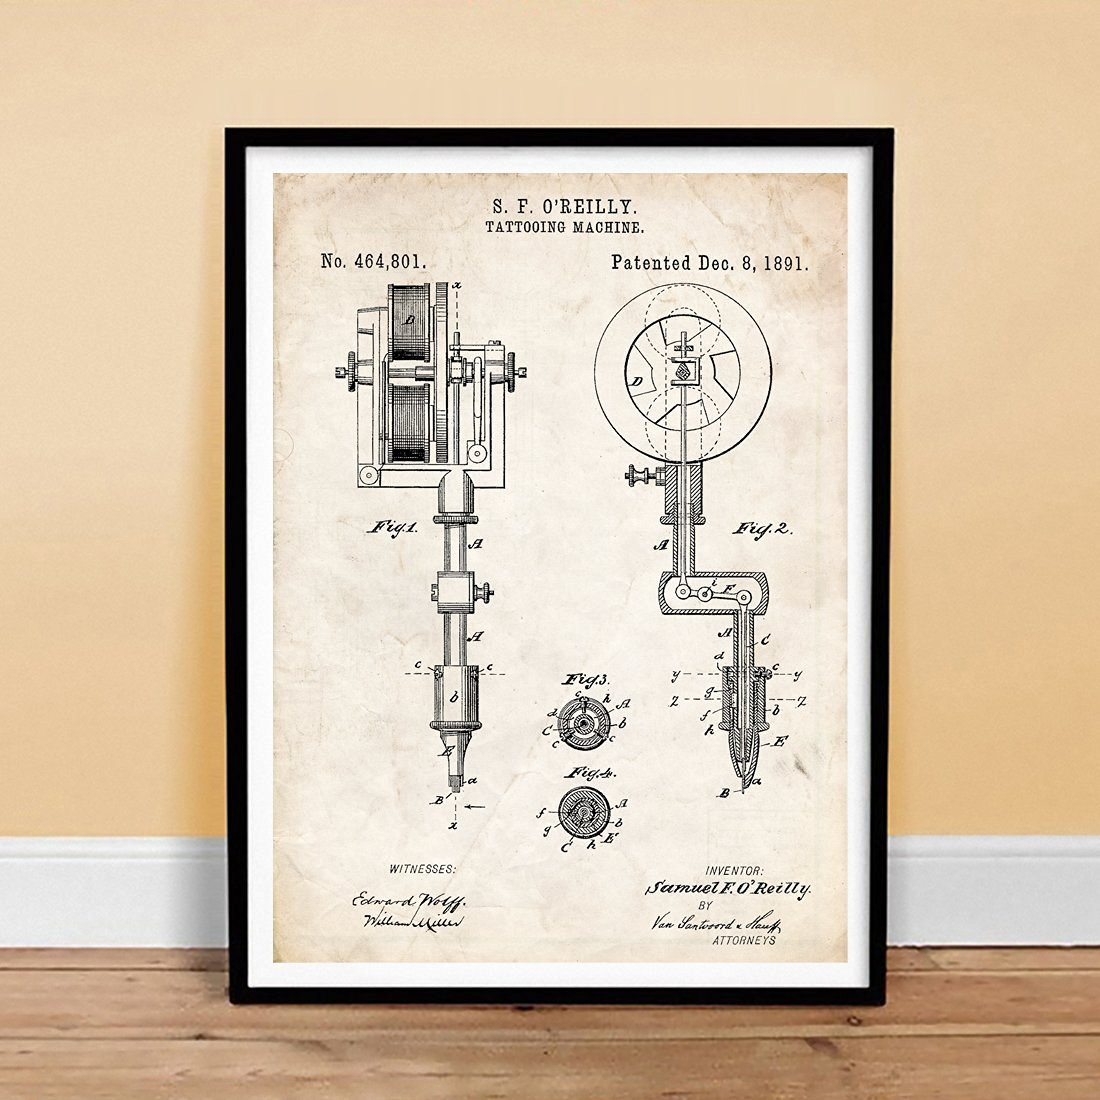 Tattooing Machine Invention Patent Art Print Tattoo O Machines Diagram Pictures Oreilly Ink Body 1891 Gift Unframed 5 X 7 Posters Prints